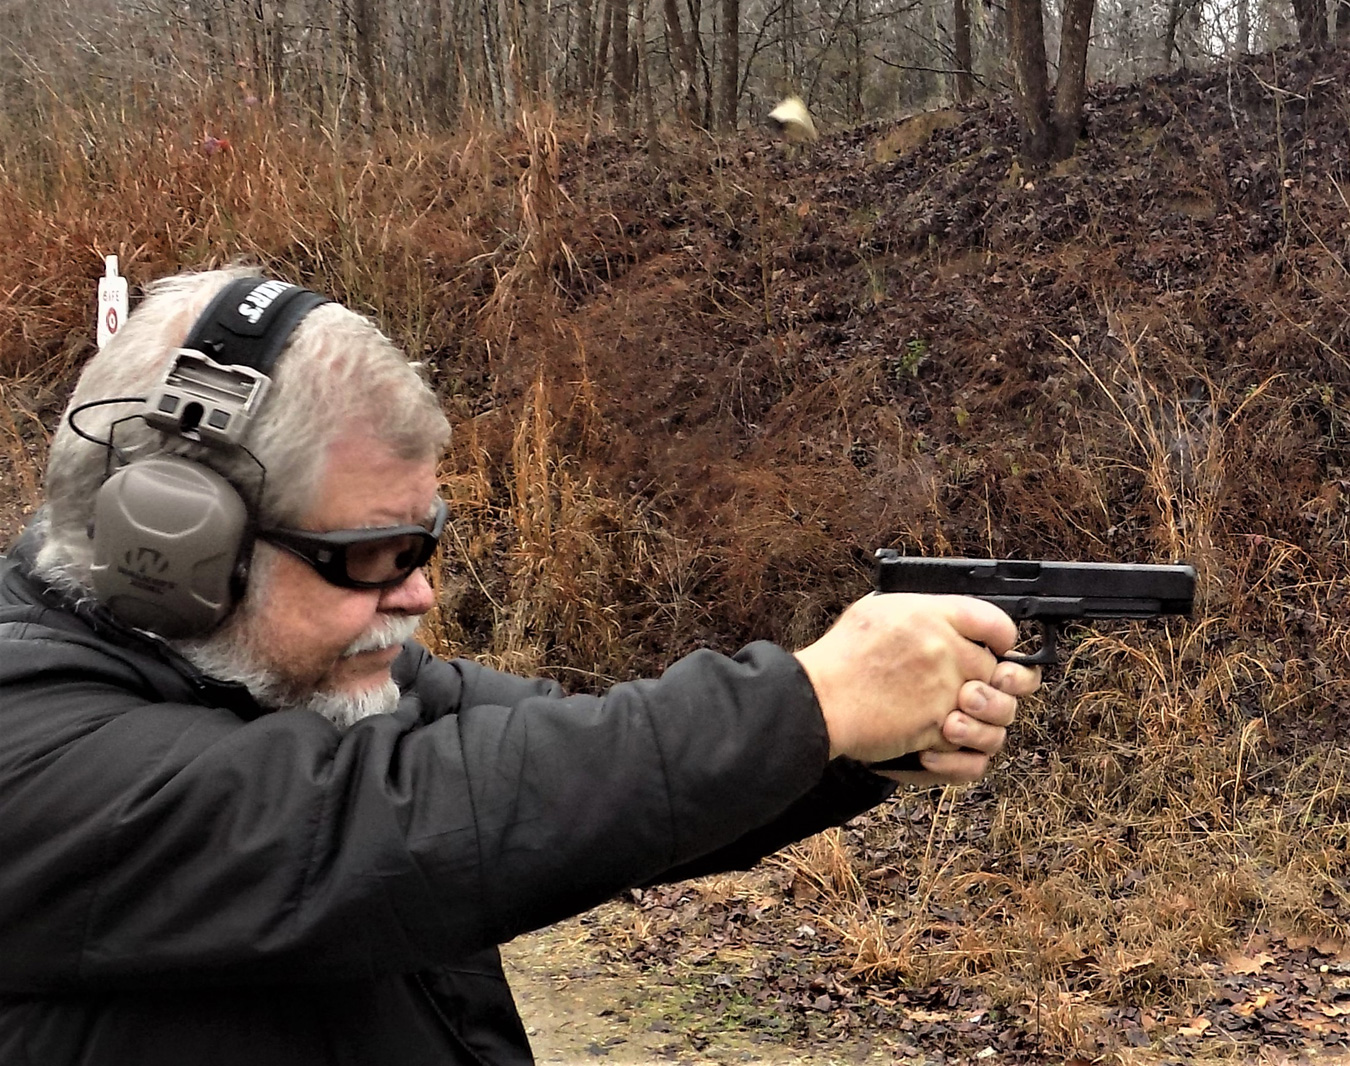 Bob Campbell shooting the SIG M17 pistol with a cartridge in the air